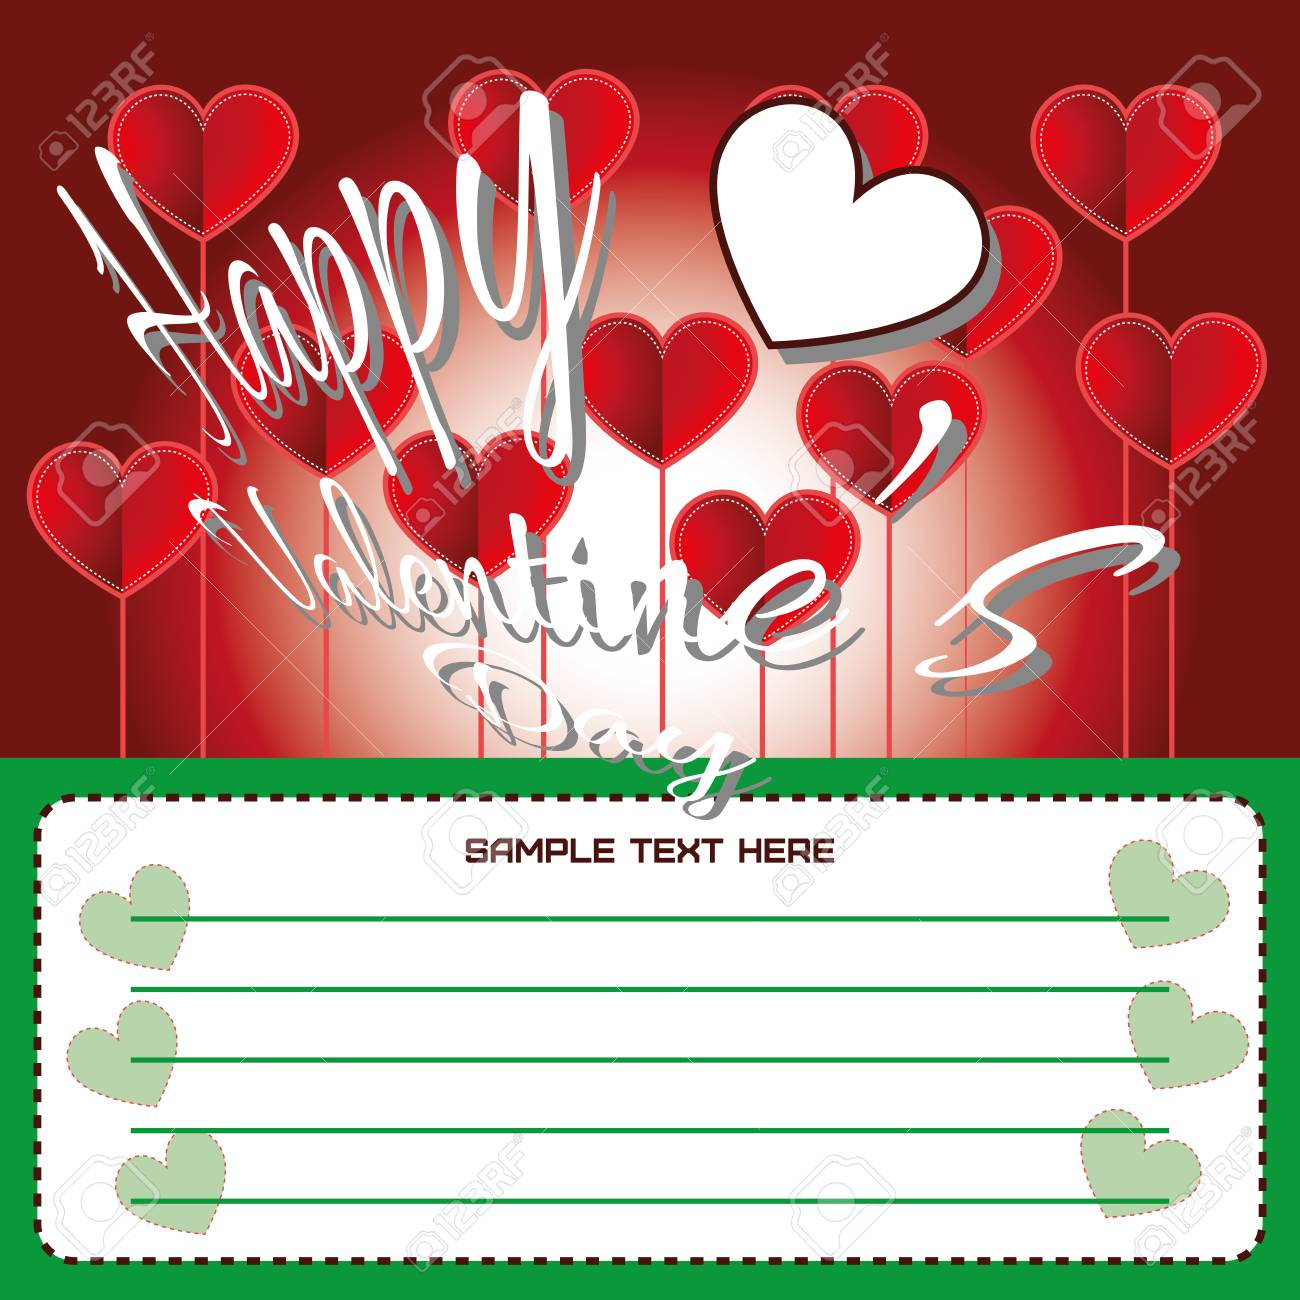 Happy Valentines Day Greeting Card Invitation Big Red Hearts